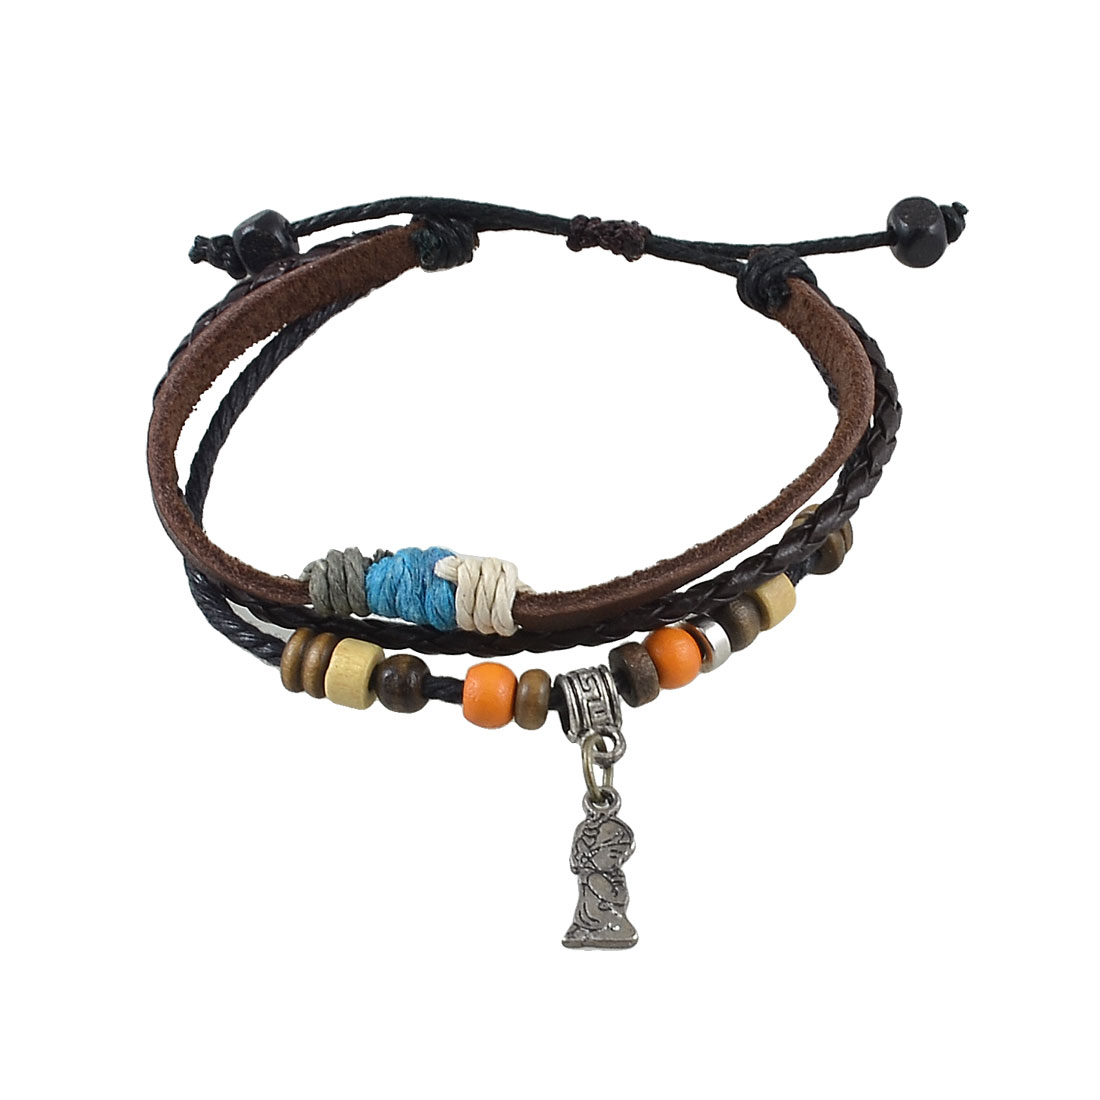 Colored Plastic Beads Brown Braided Faux Leather Adjustable Bracelet for Unisex